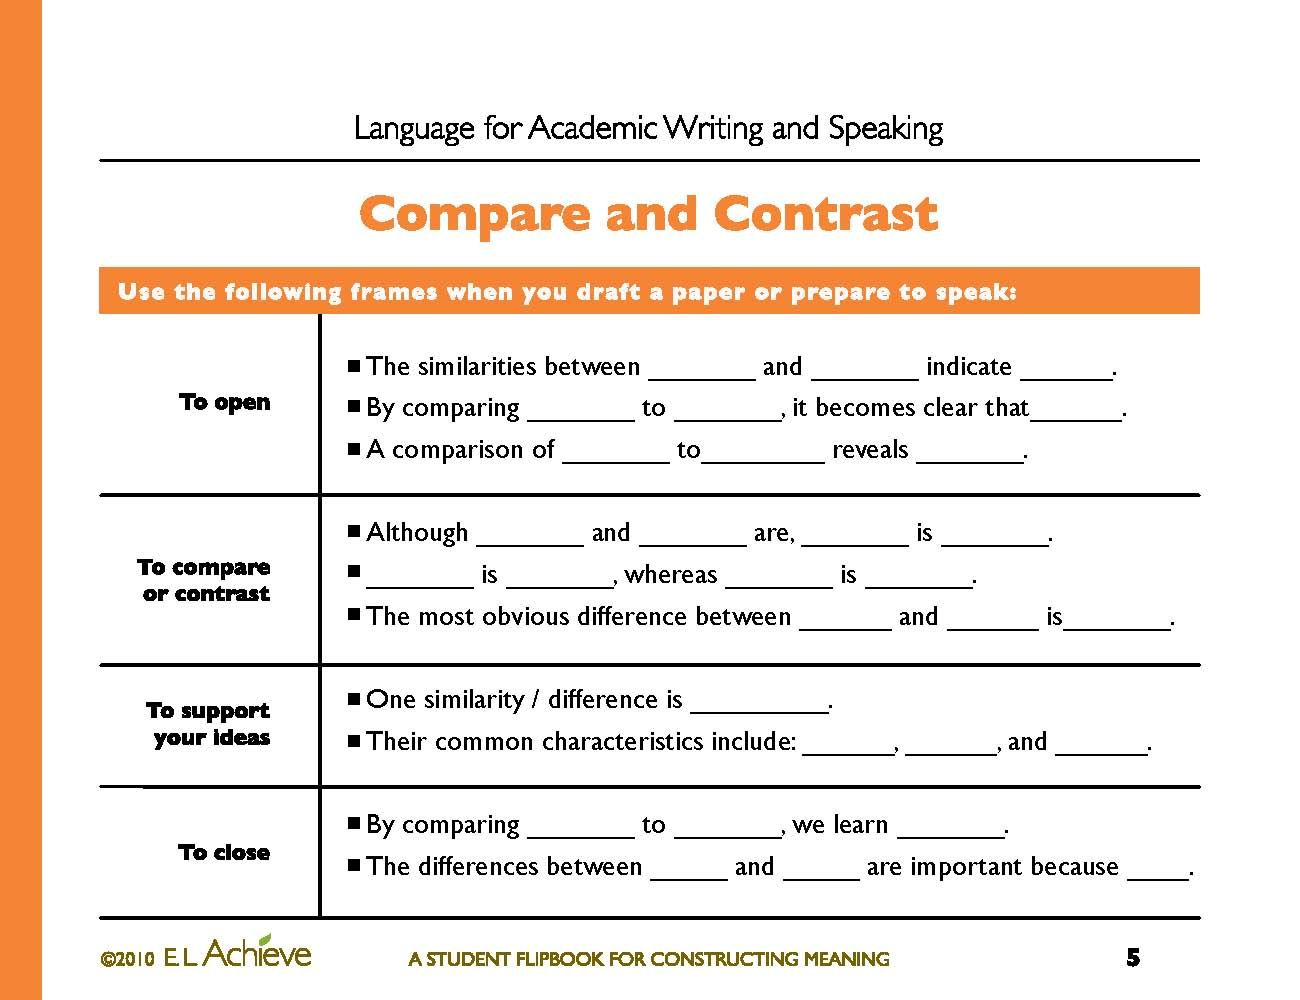 worksheet Compare And Contrast Worksheets 4th Grade 18 best ela compare and contrast images on pinterest teaching student flipbook language for academic writing speaking contrast